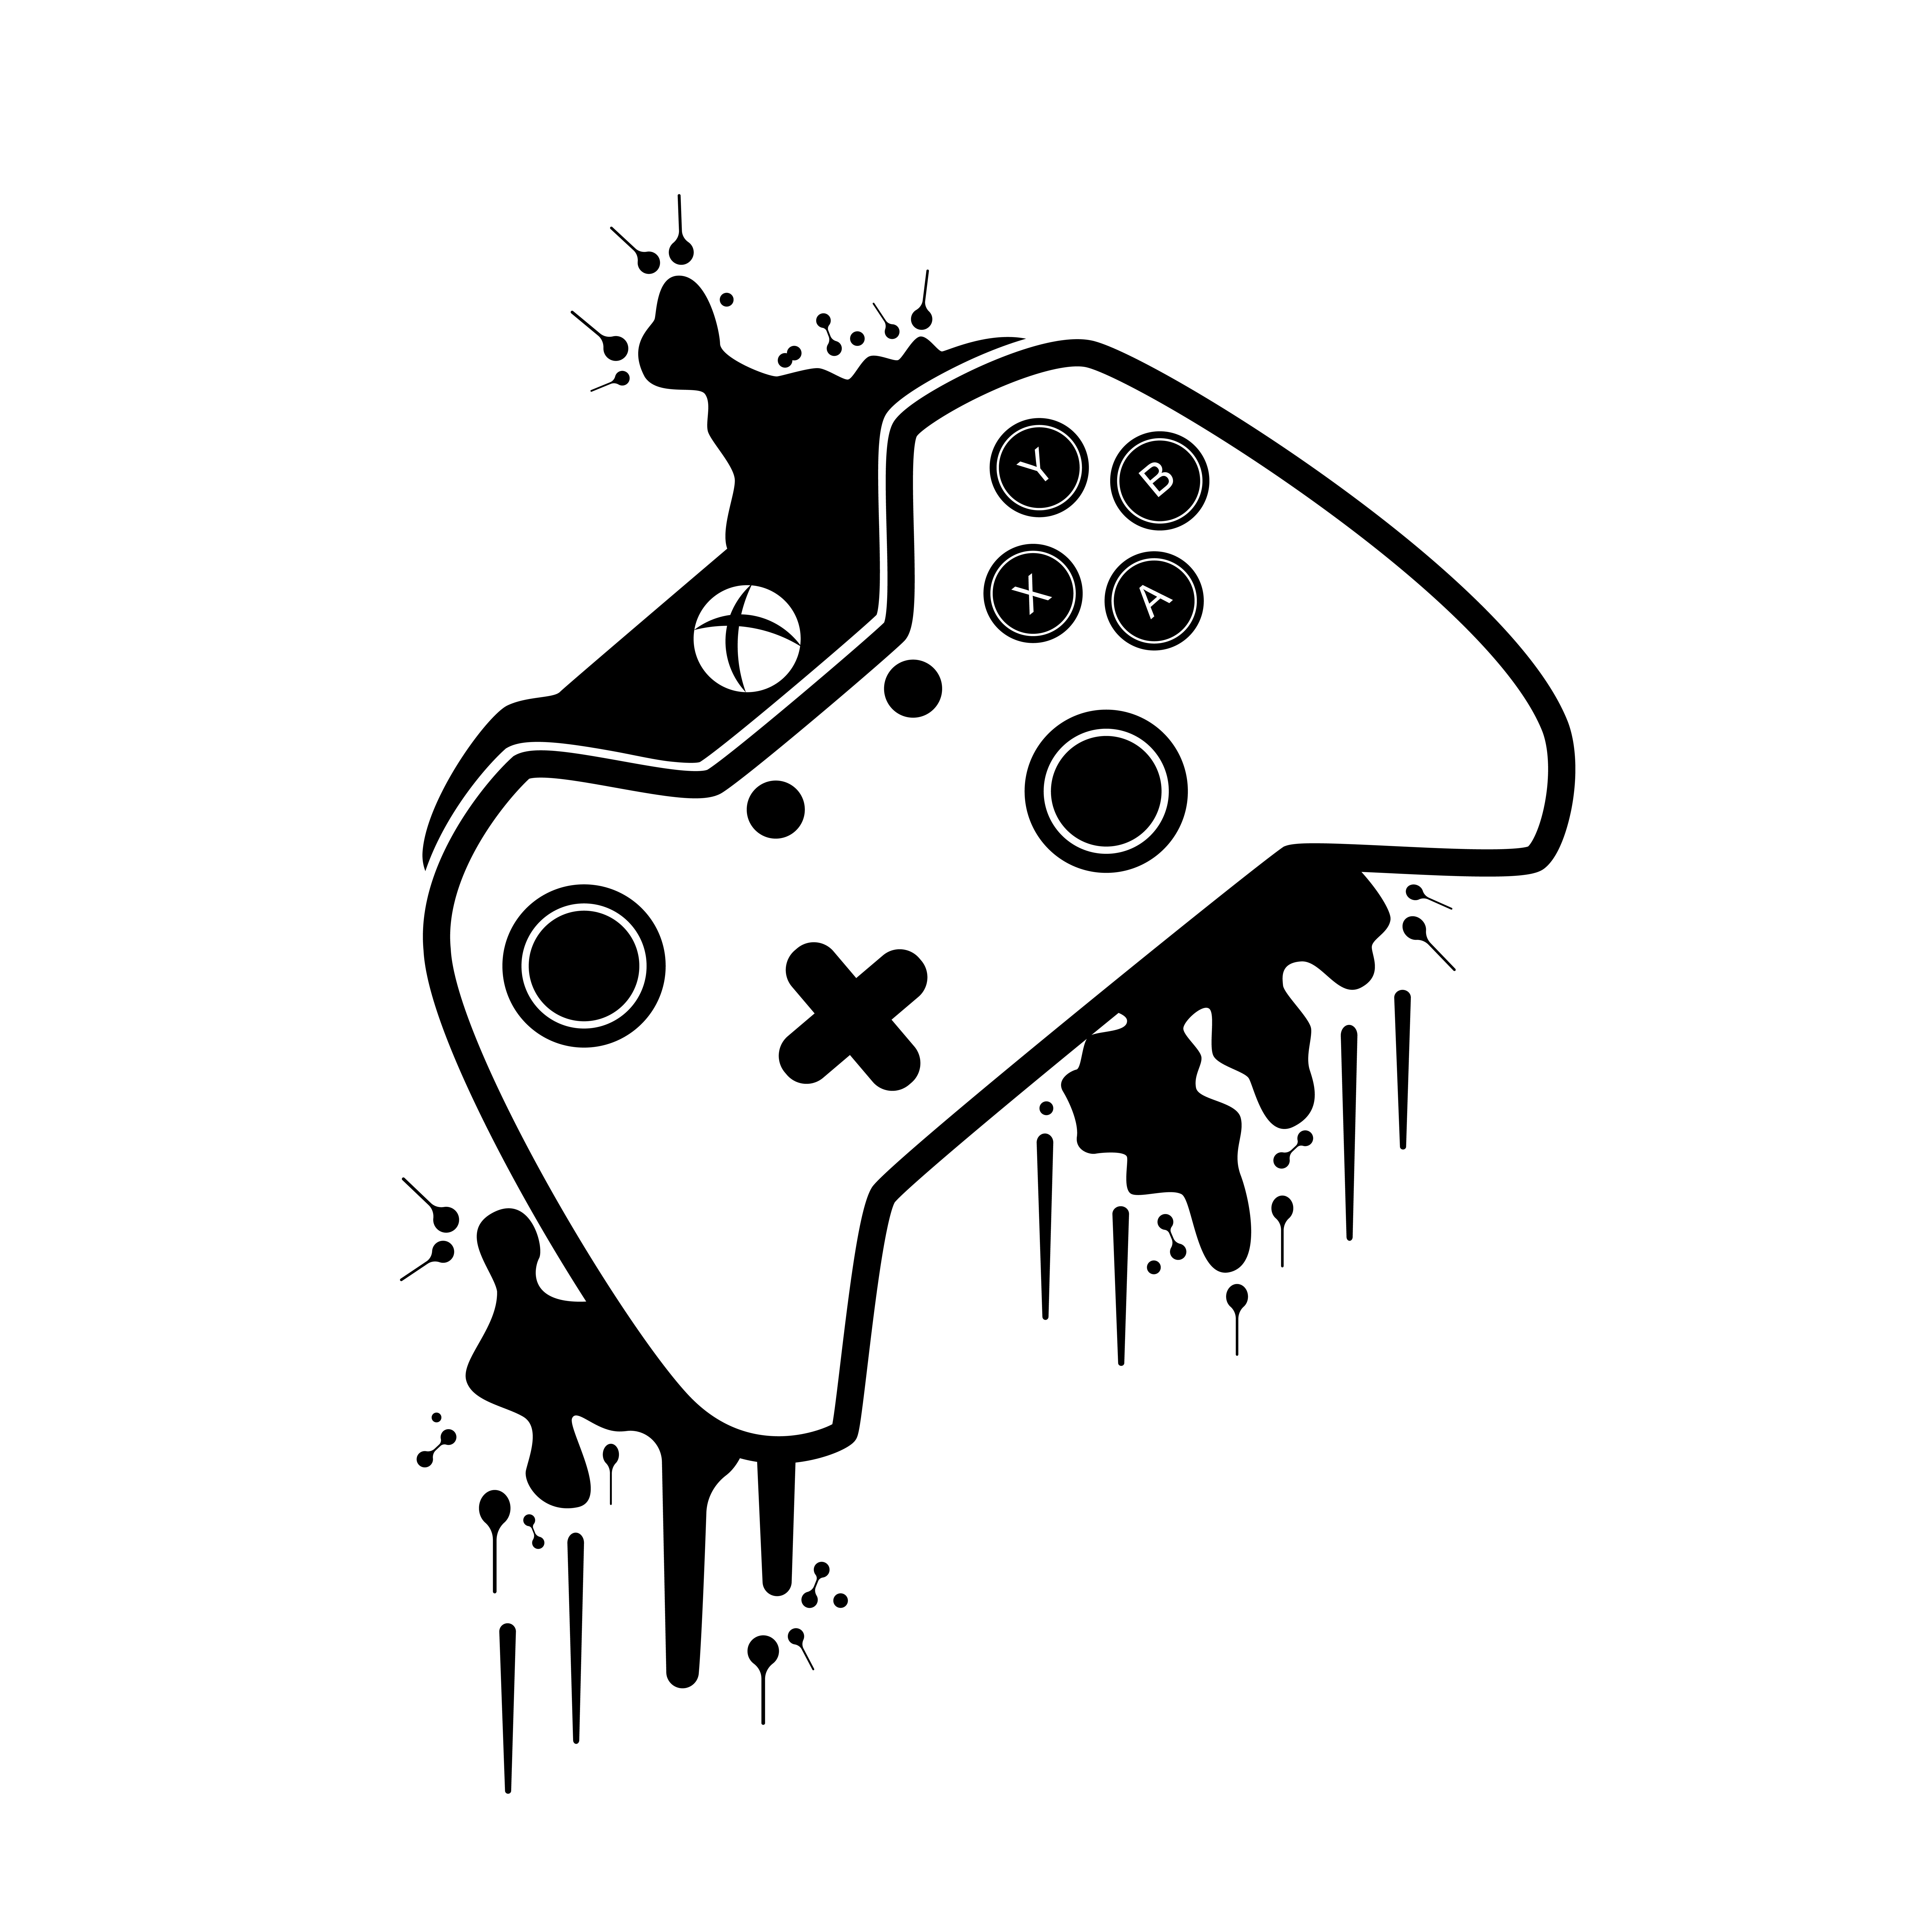 Xbox Controller Painting In